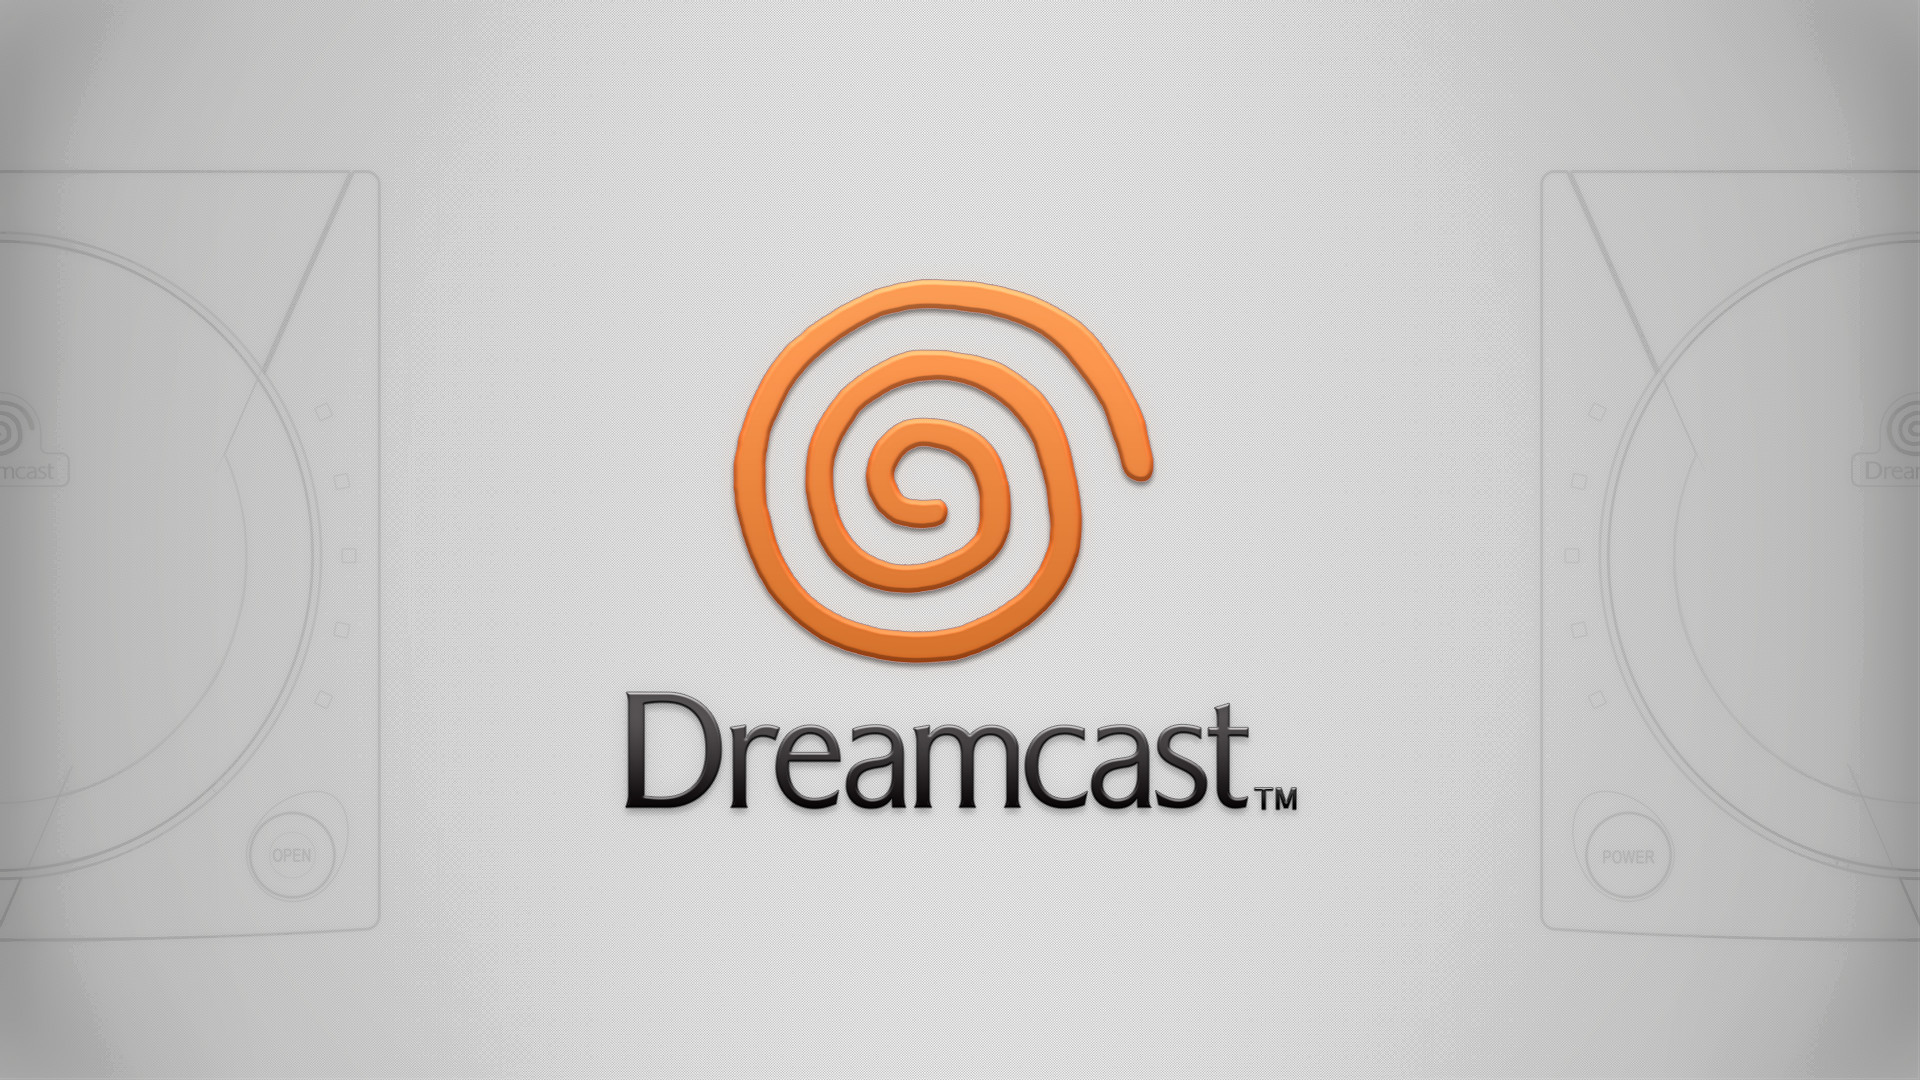 Sega Dreamcast Wallpaper (70+ images)